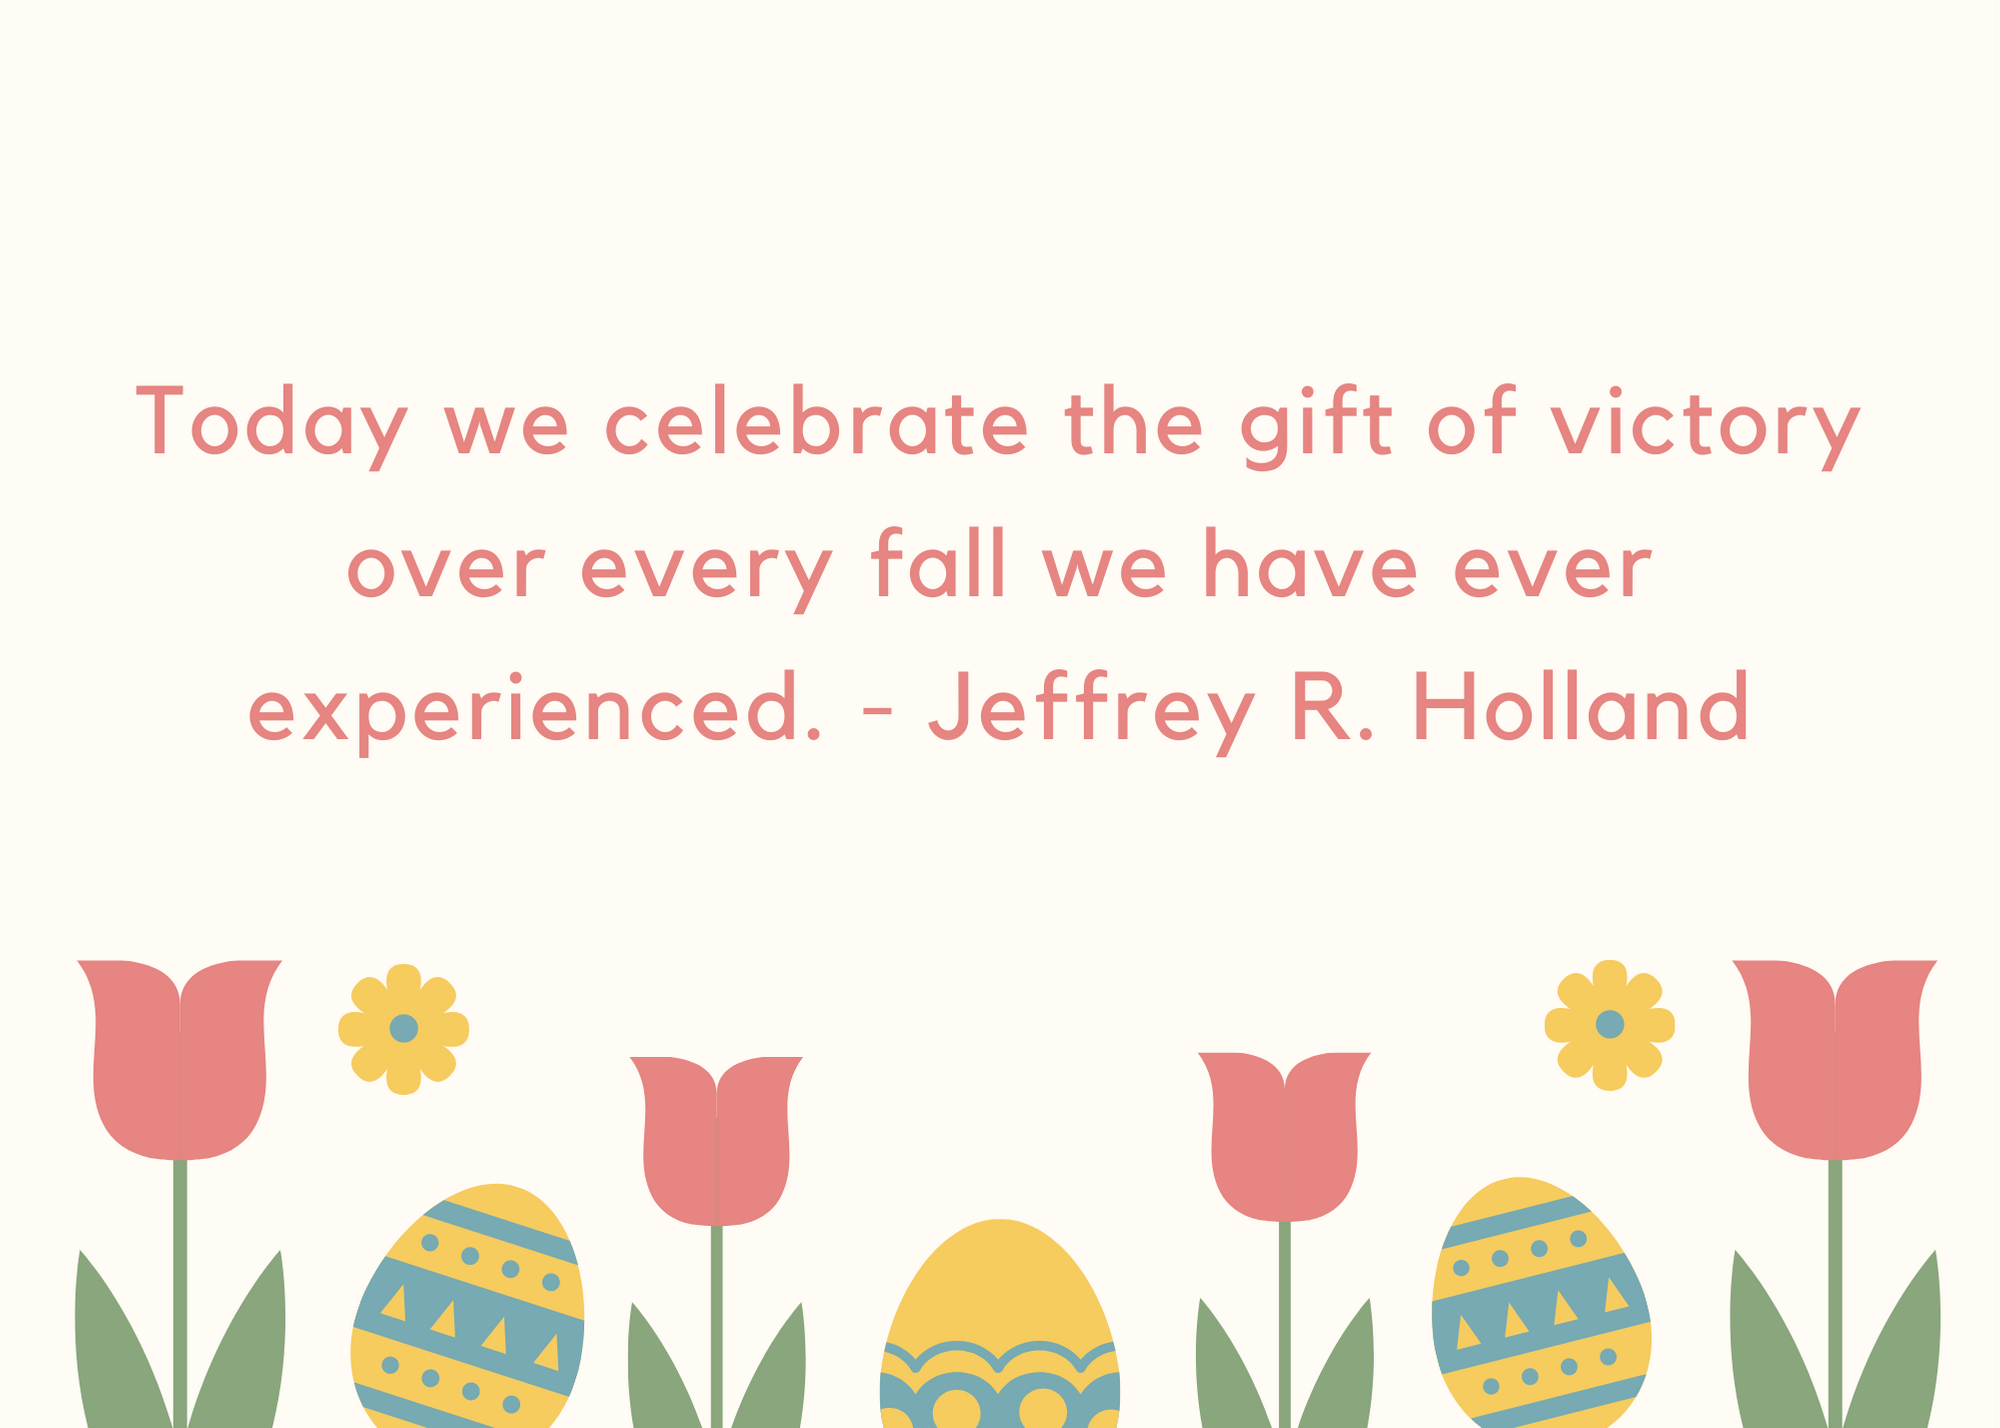 Today we celebrate the gift of victory over every fall we have ever experienced. - Jeffrey R. Holland